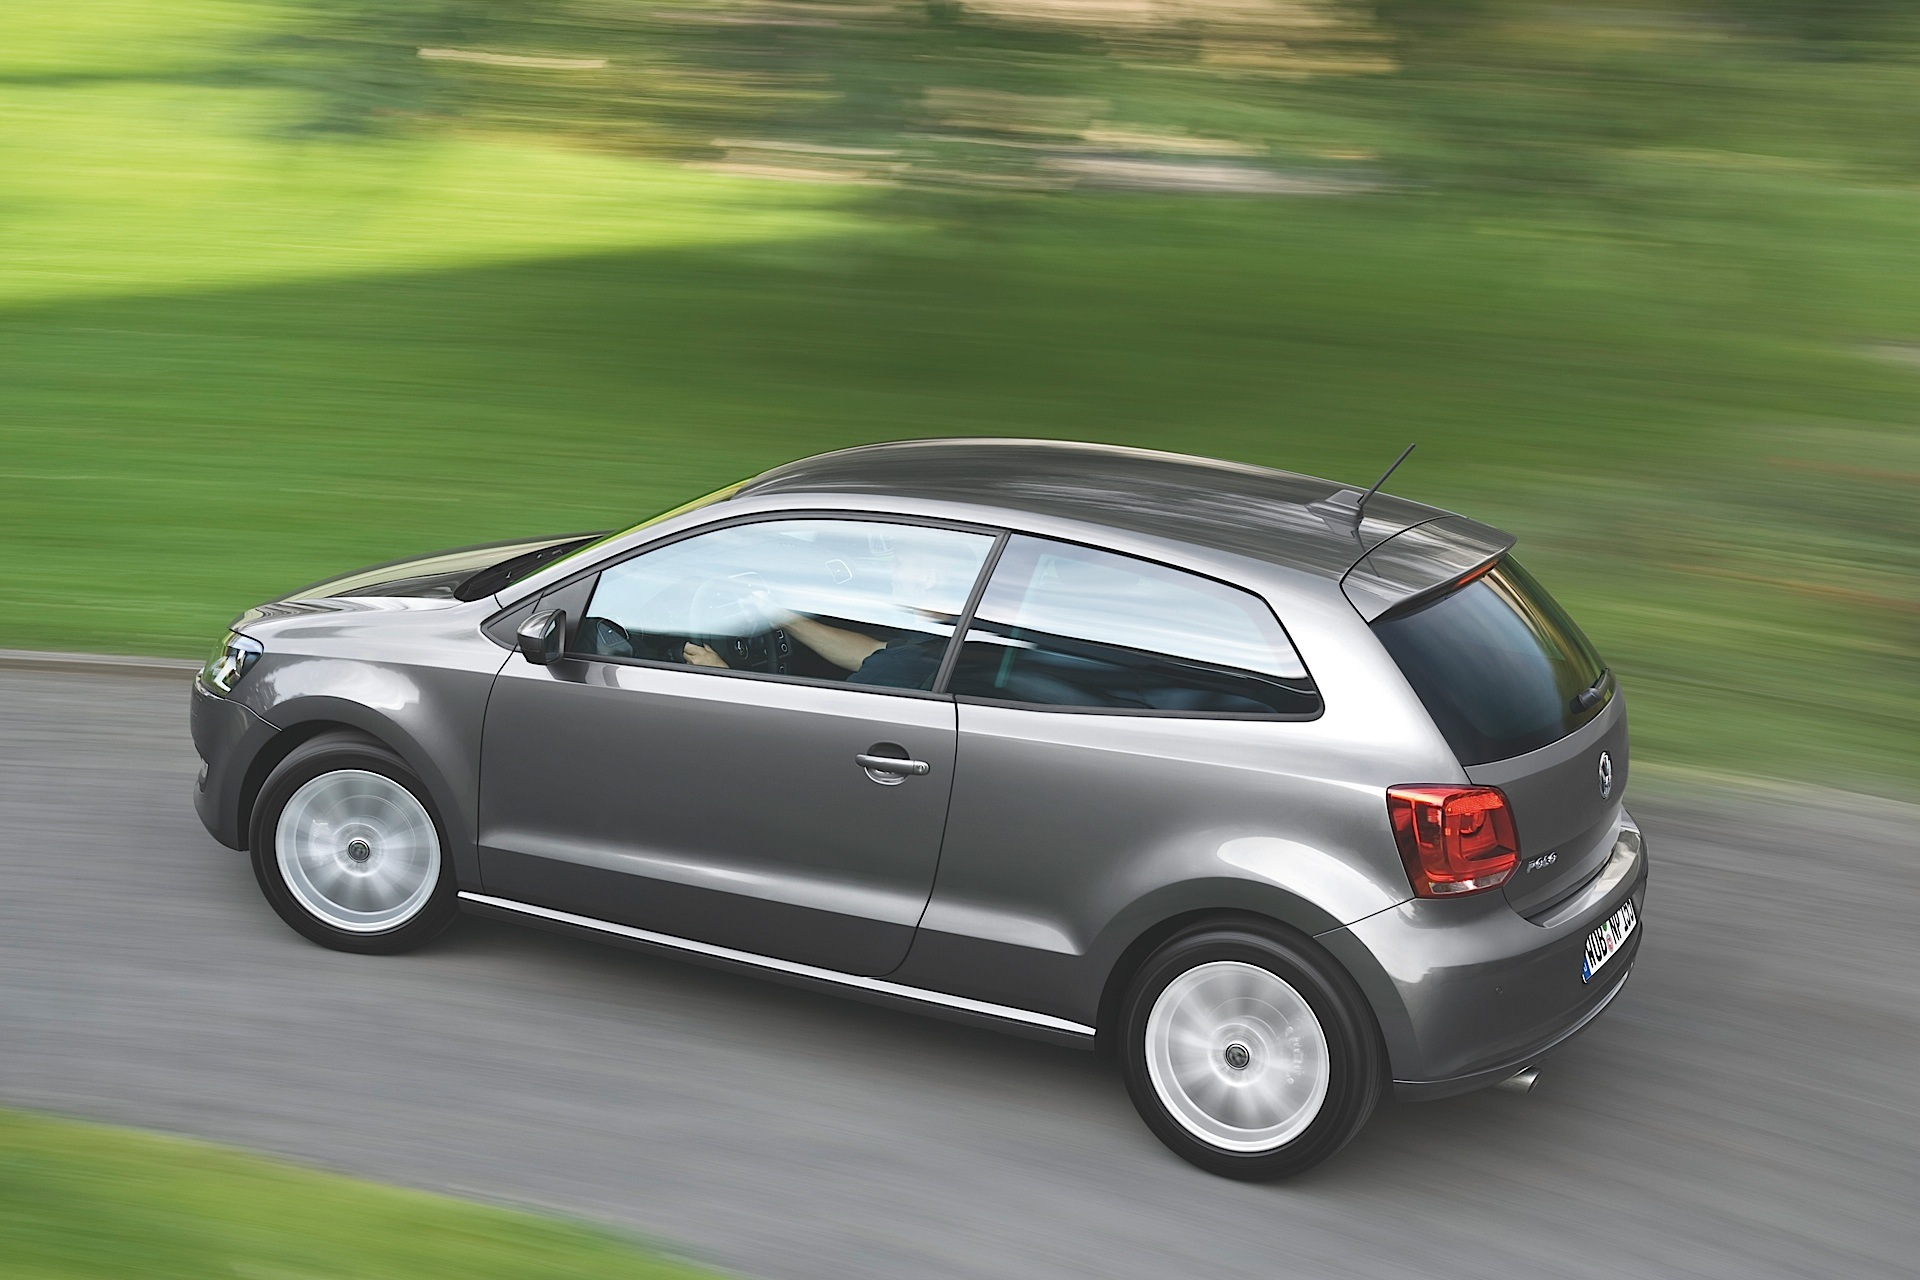 volkswagen polo 3 doors specs photos 2009 2010 2011 2012 2013 2014 autoevolution. Black Bedroom Furniture Sets. Home Design Ideas